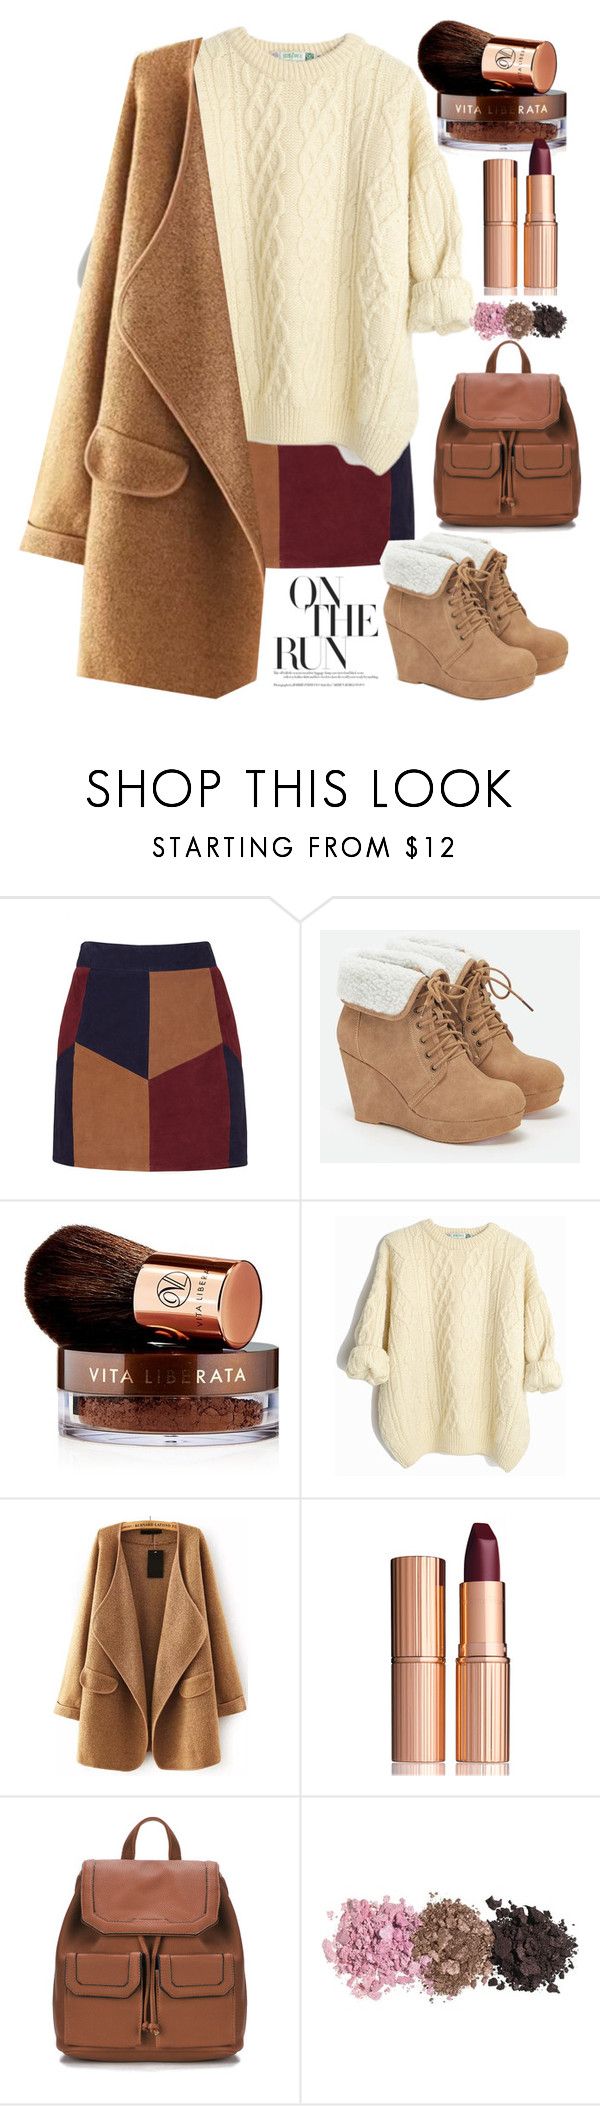 """134"" by erohina-d ❤ liked on Polyvore featuring LaMarque, JustFab, Vita Liberata and Charlotte Tilbury"